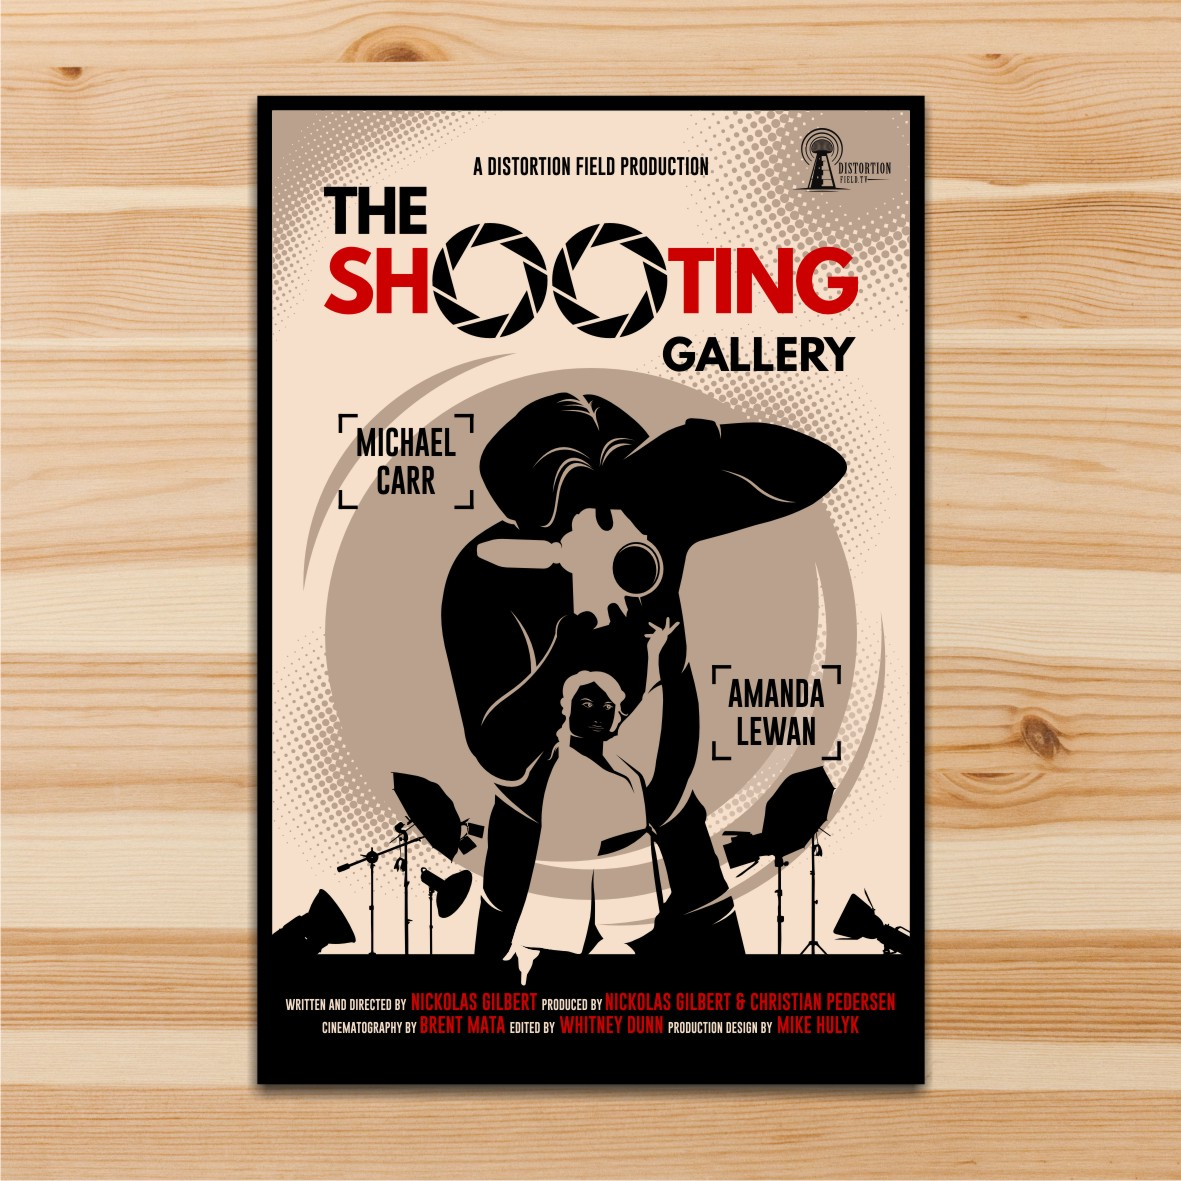 The Shooting Gallery Poster 2.jpg